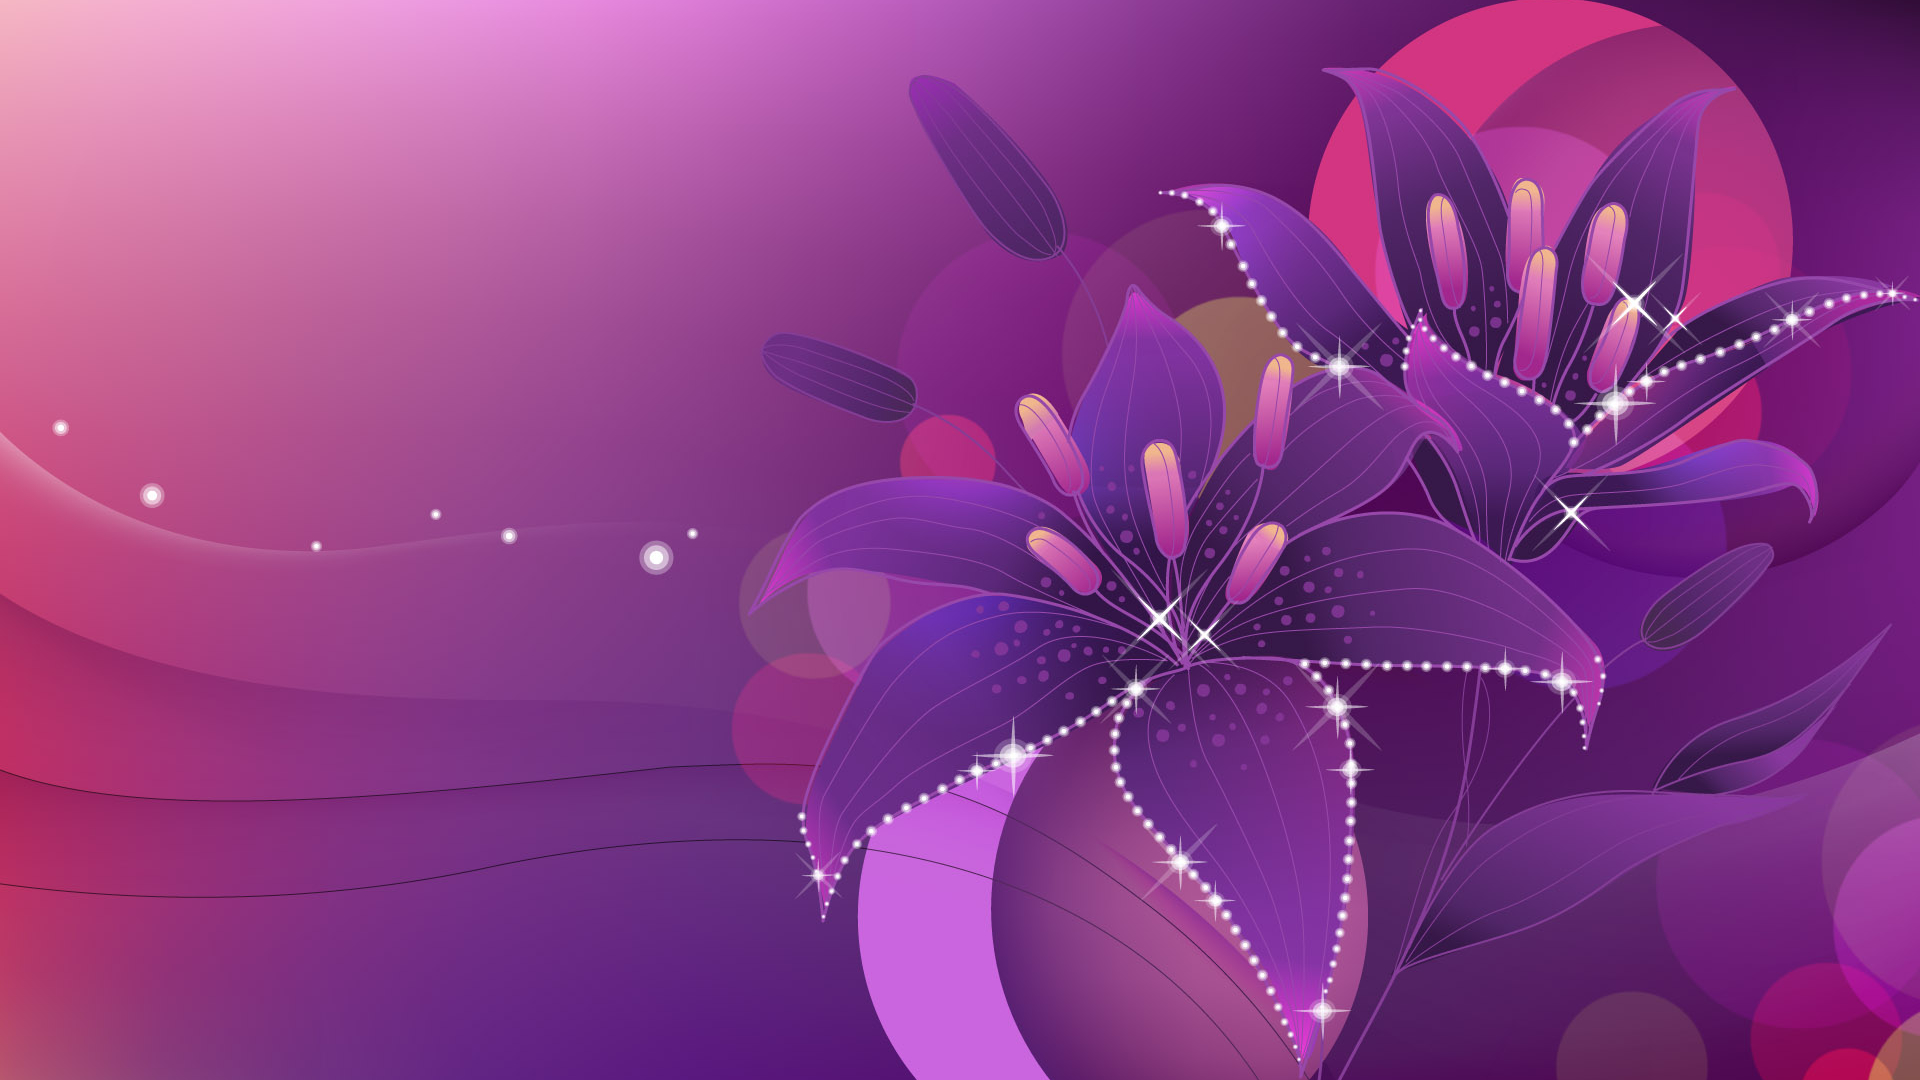 Free Download Purple Floral Abstract Wallpaper Abstract Wallpapers